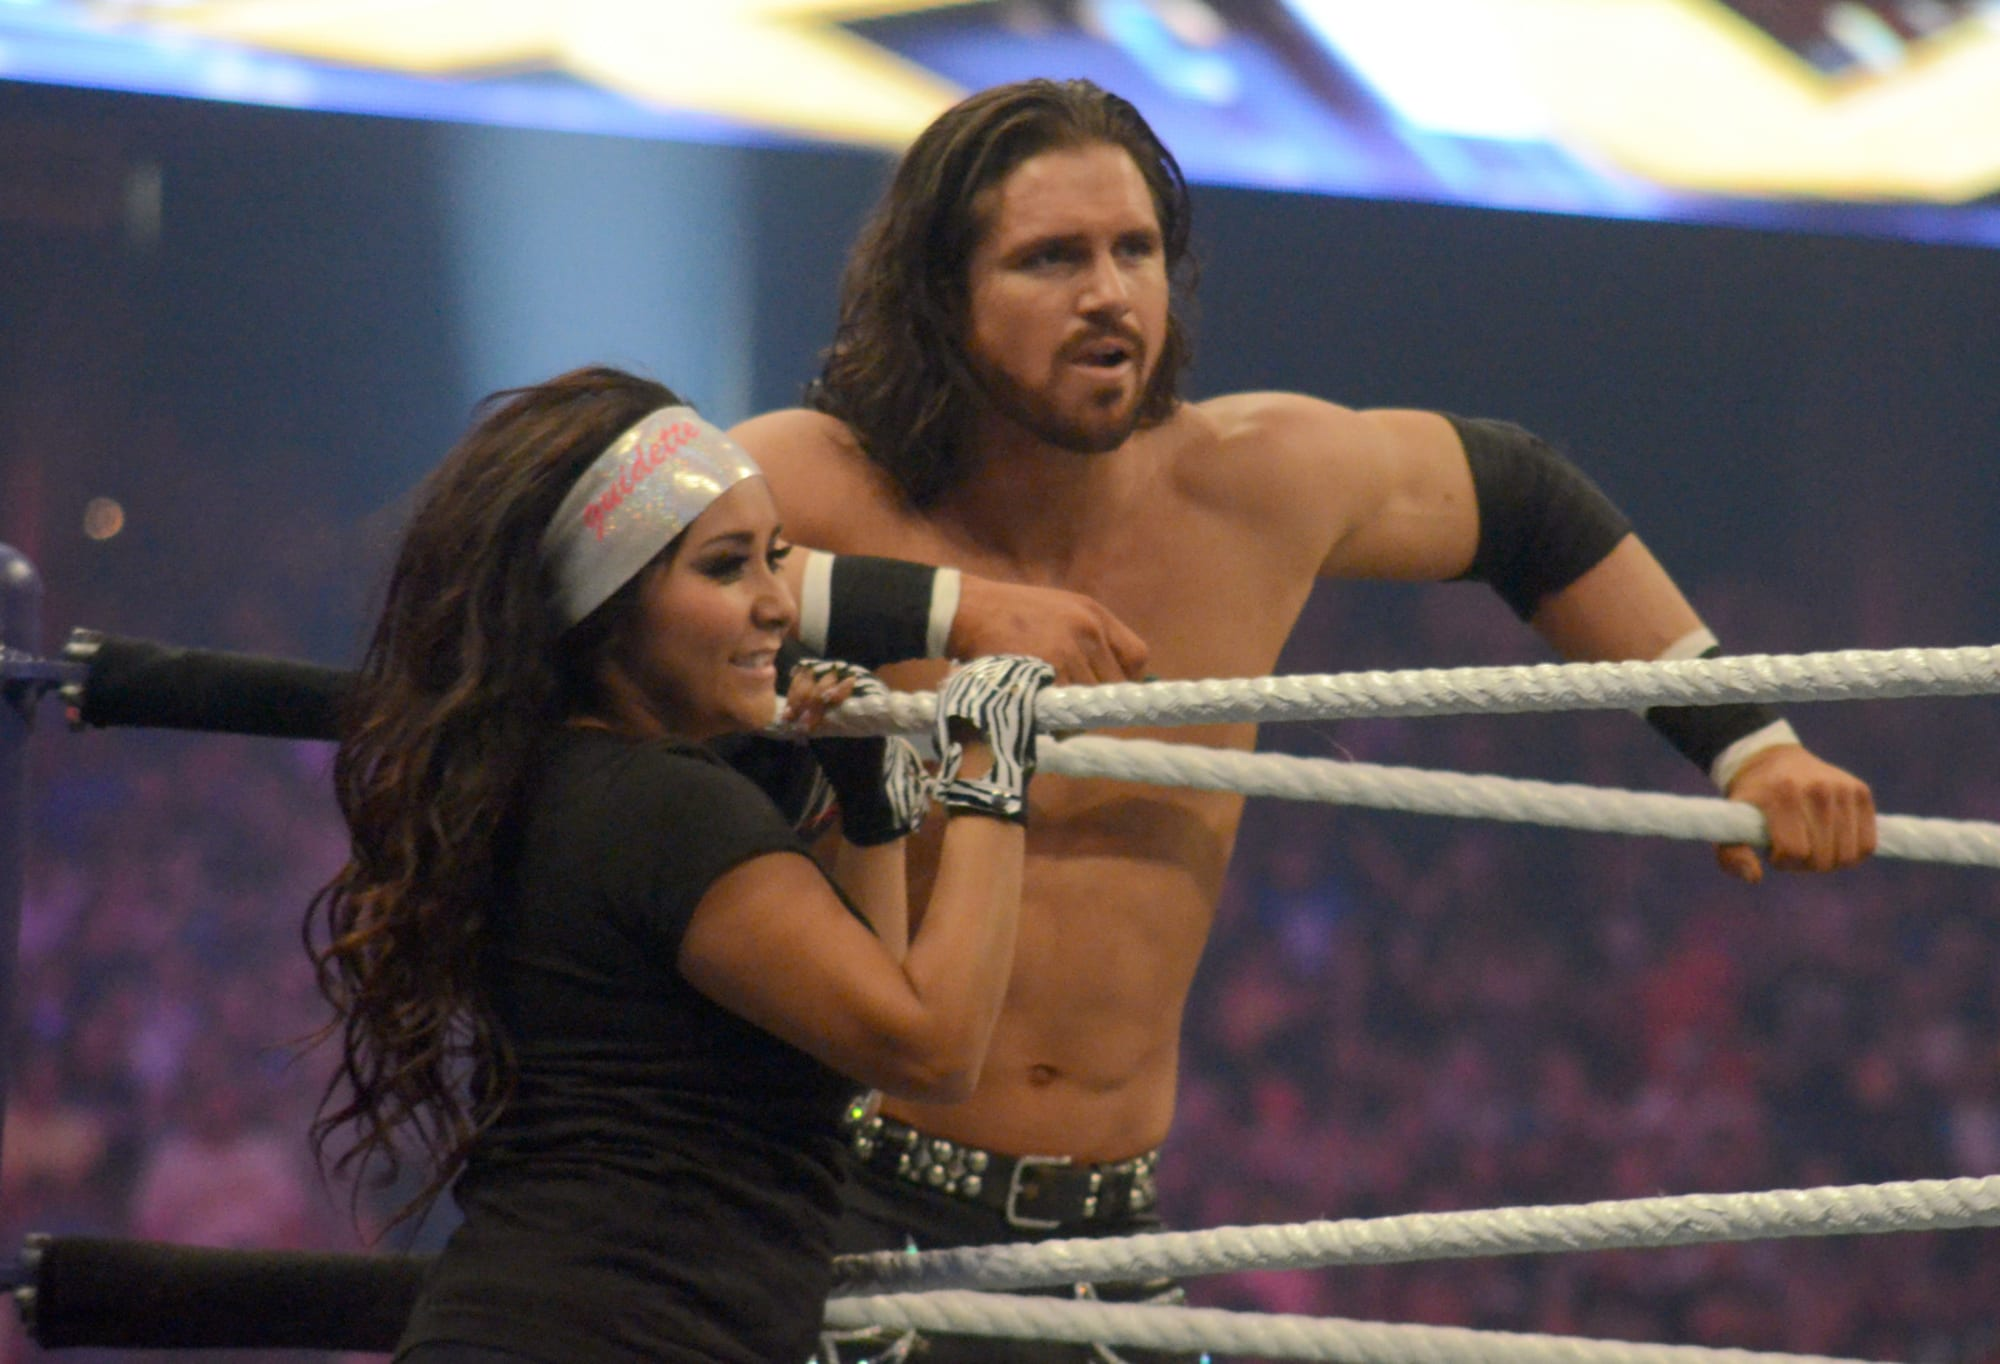 John Morrison returns to WWE with a world of new possbilities